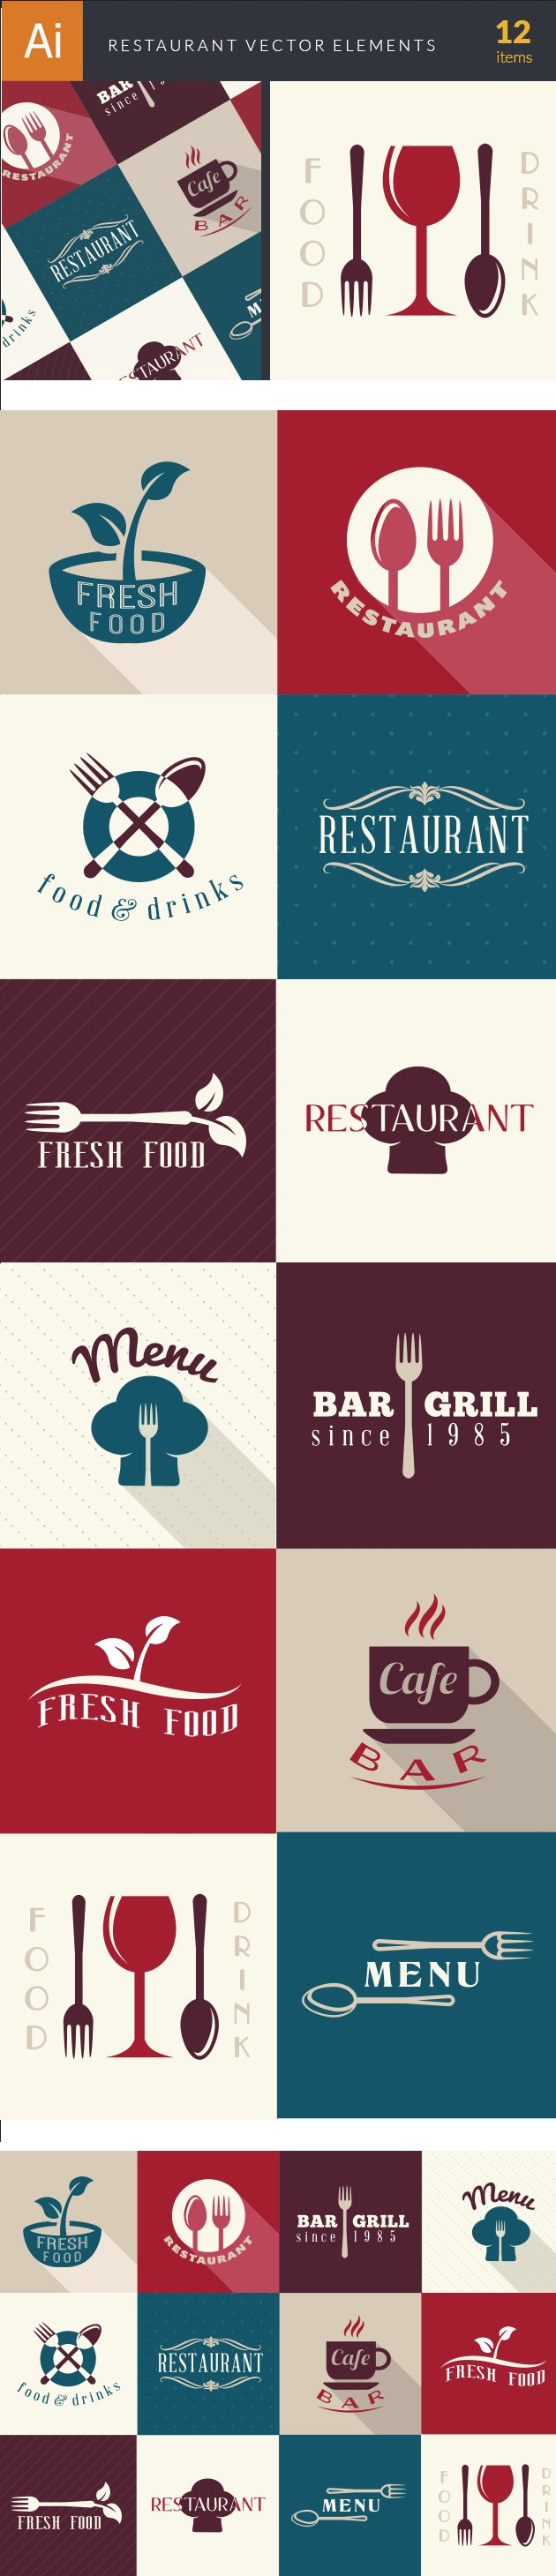 Restaurant Elements Vector 2